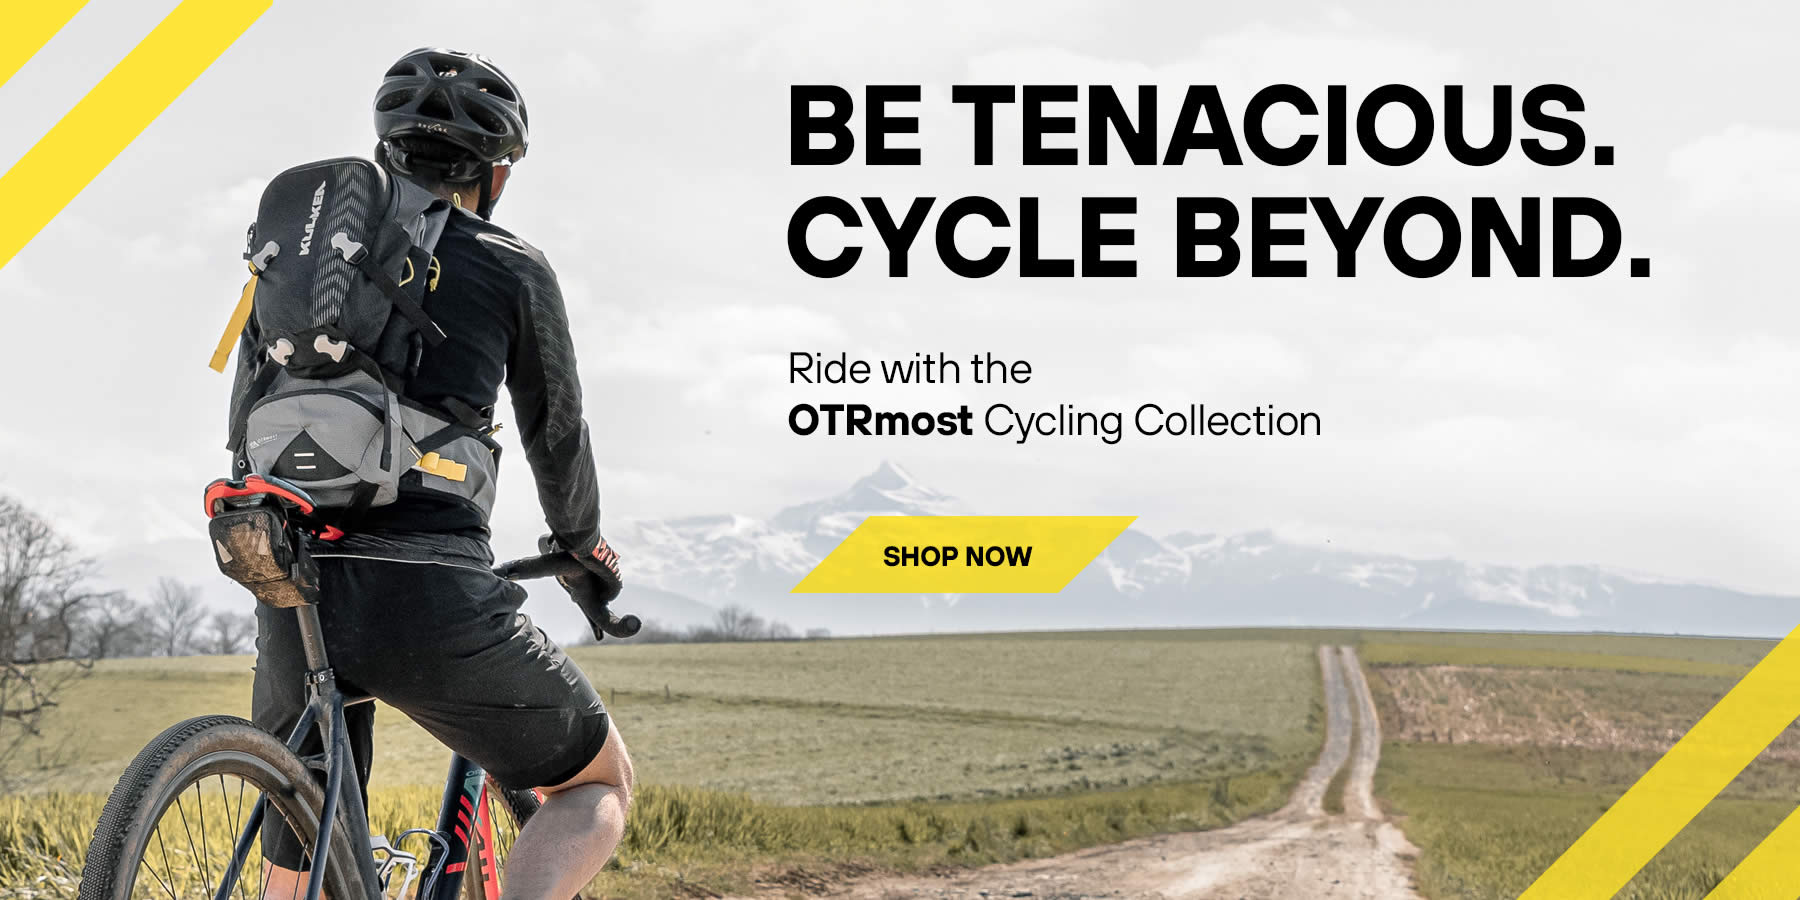 Be Tenacious. Cycle Beyond. Ride with the OTRmost Cycling Collection - Kulkea Pack, Bags, Tool Roll Shop Now!